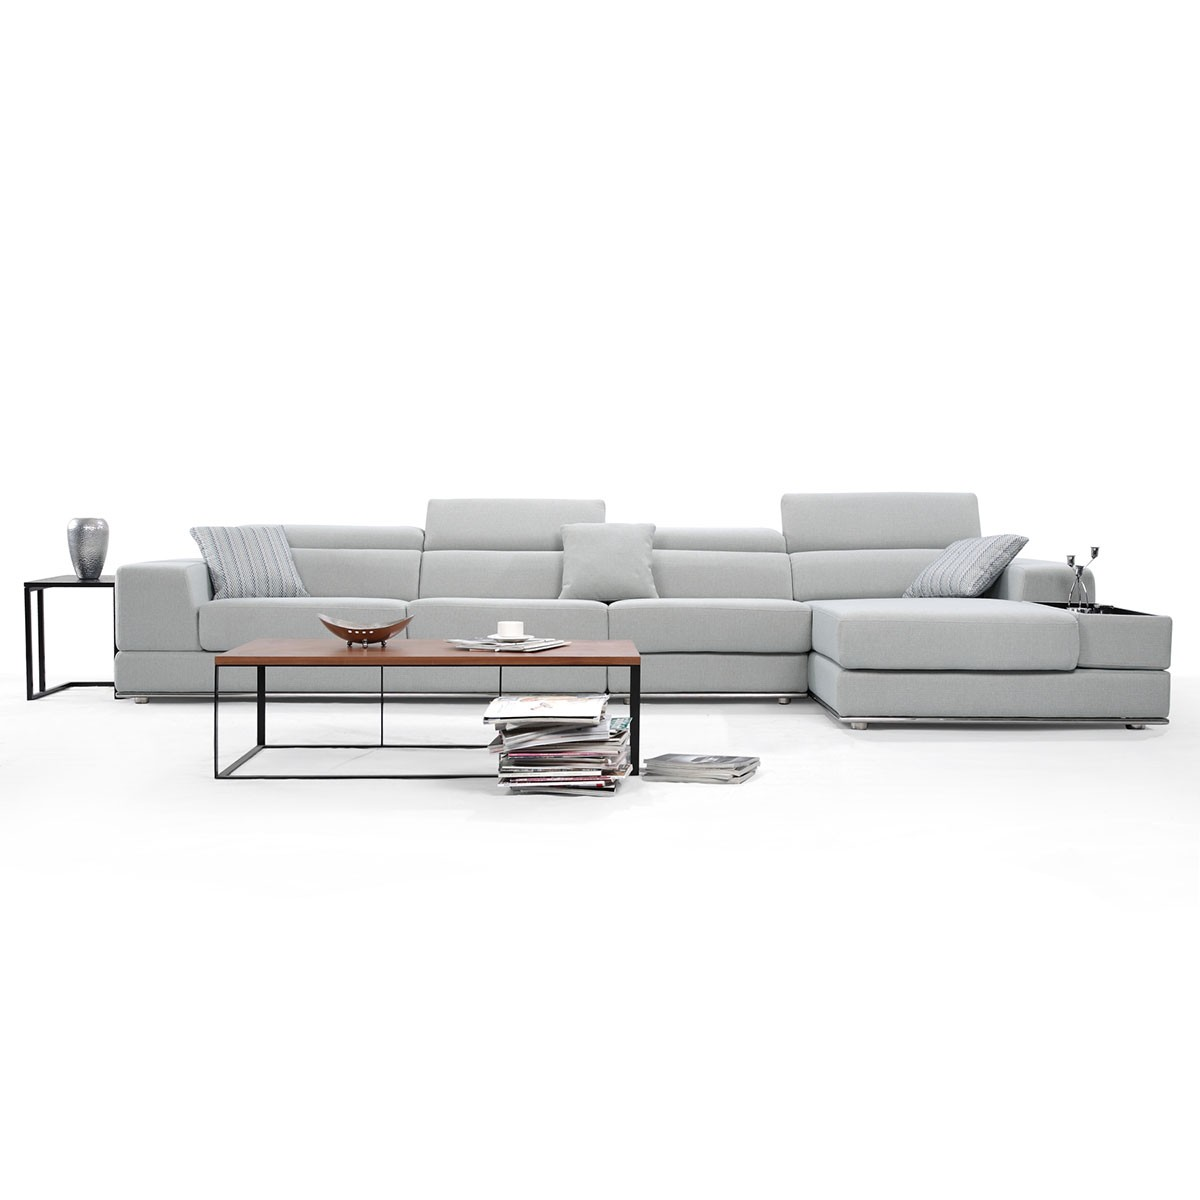 Fabric Right-facing Chaise Sectional with Pillows - Grey (BO-9830)